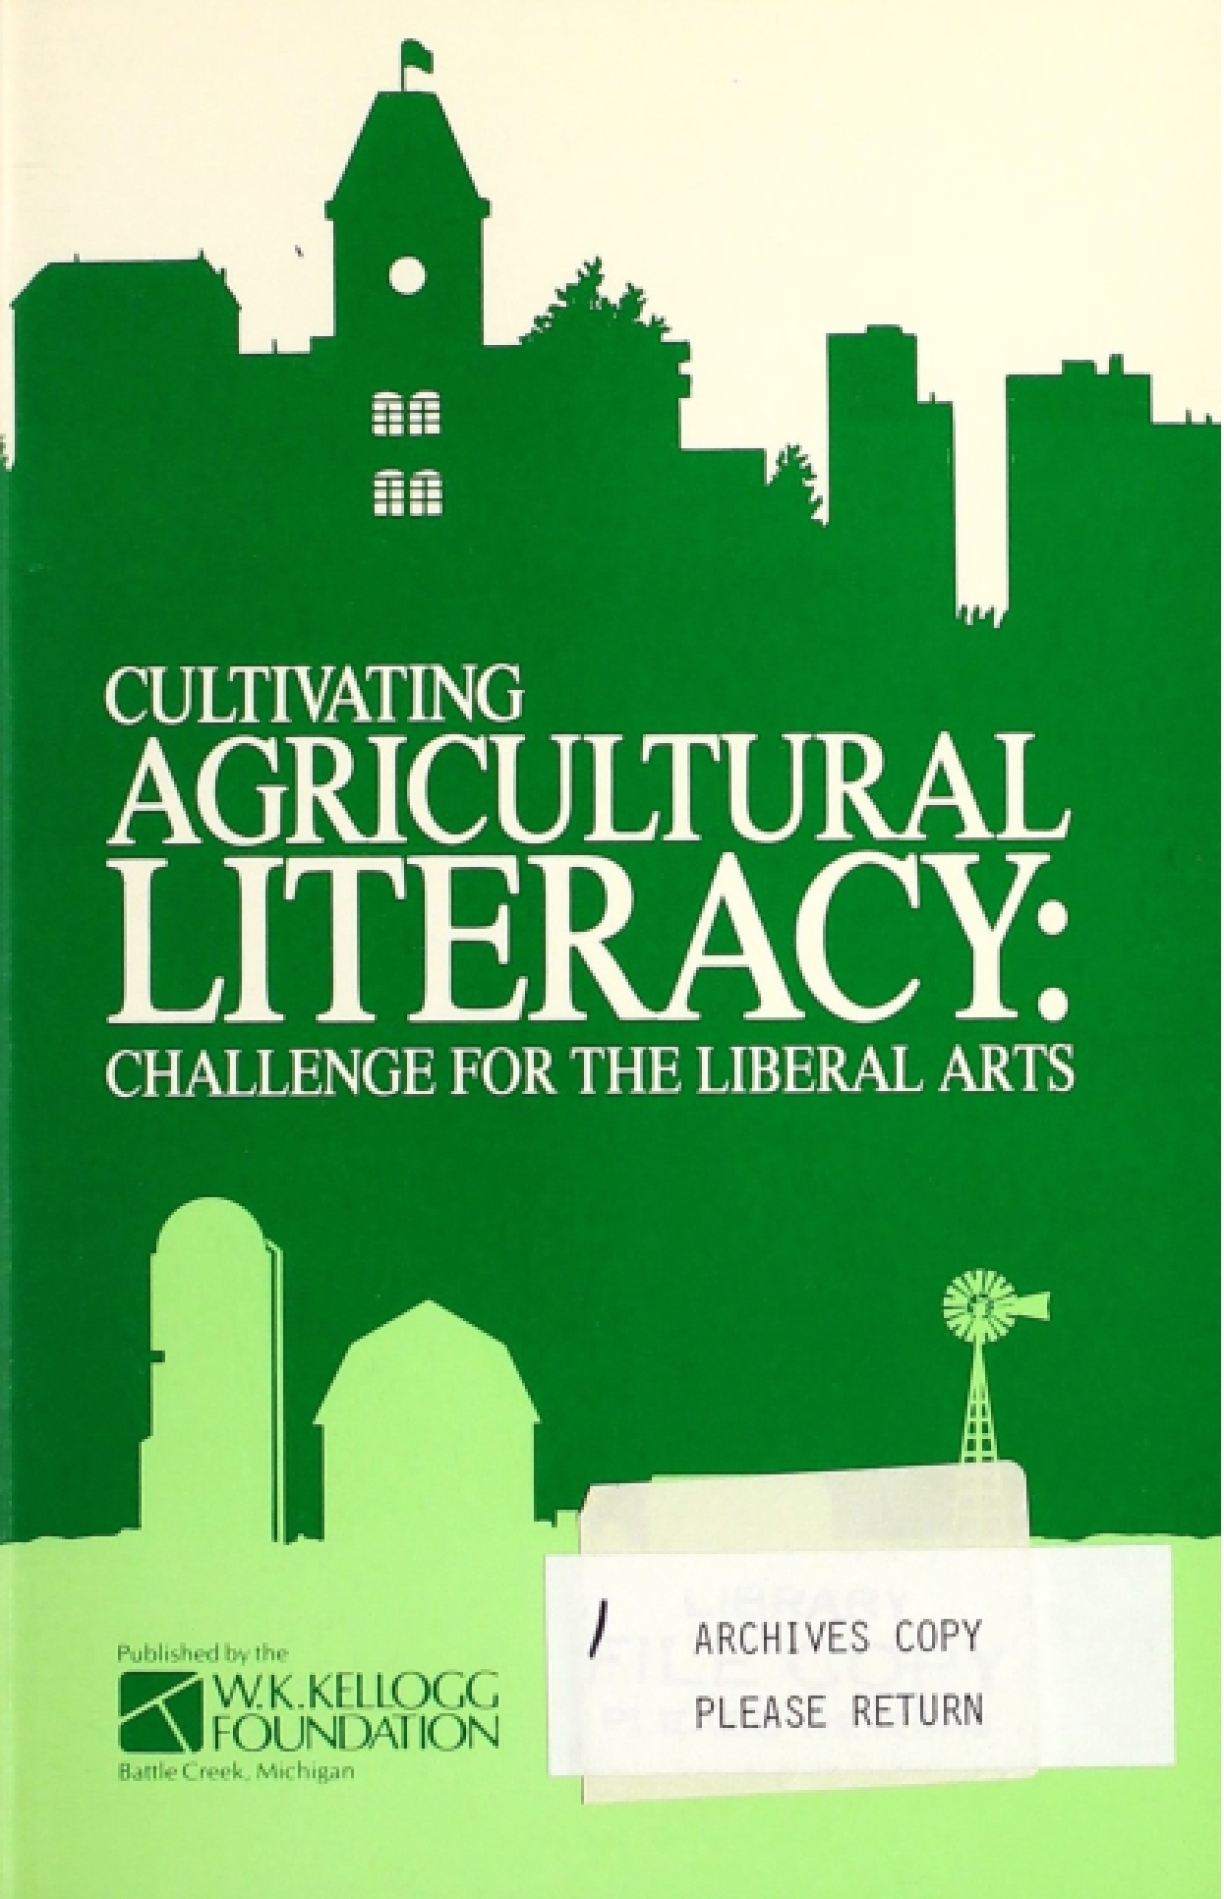 Cultivating Agricultural Literacy: Challenge for the Liberal Arts